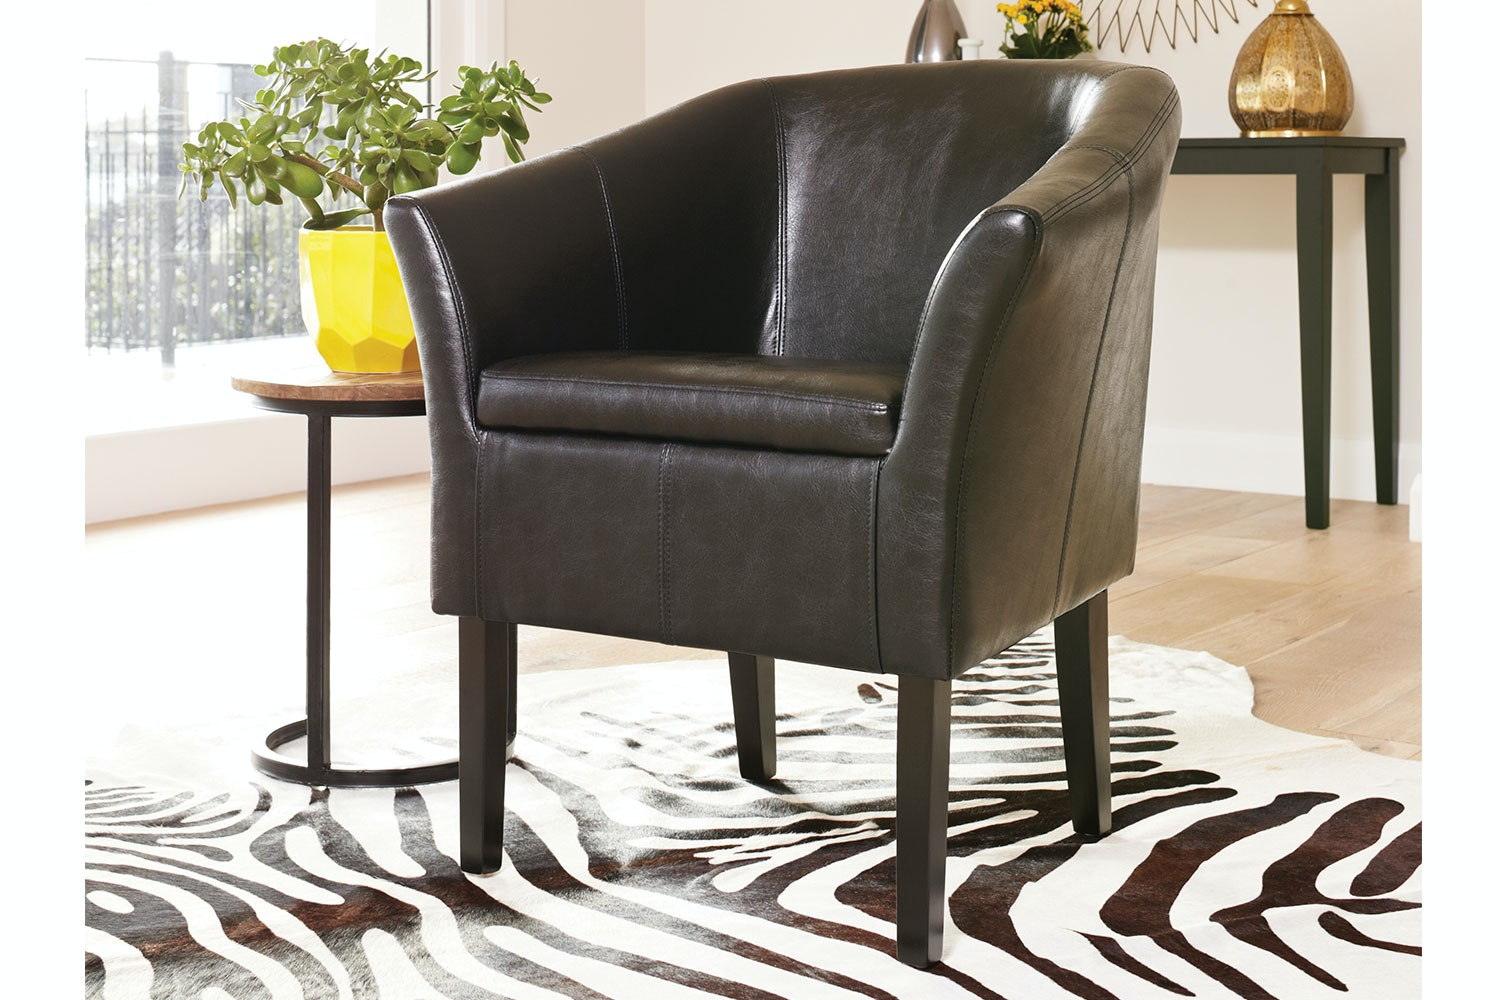 Black Aria Tub Chair by Nero Furniture